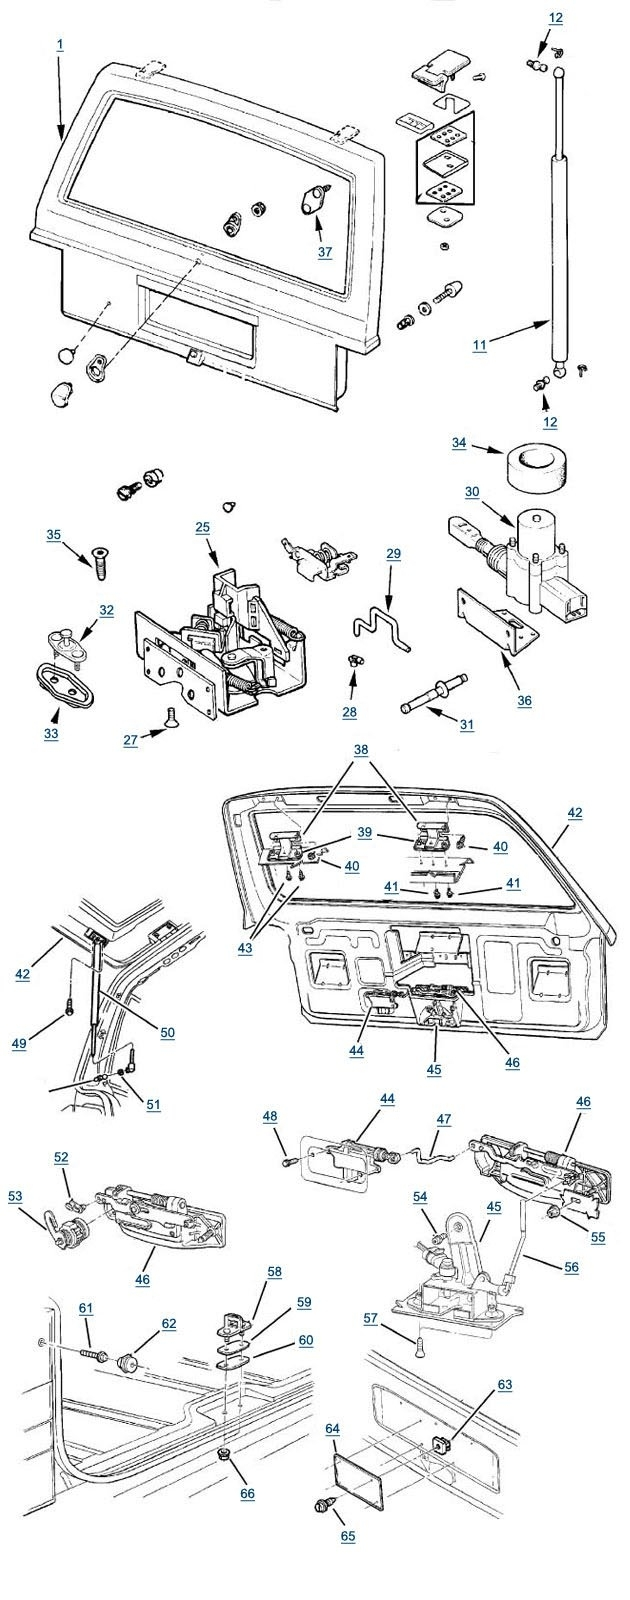 1999    Jeep       Grand       Cherokee       Parts       Diagram      Automotive    Parts       Diagram    Images